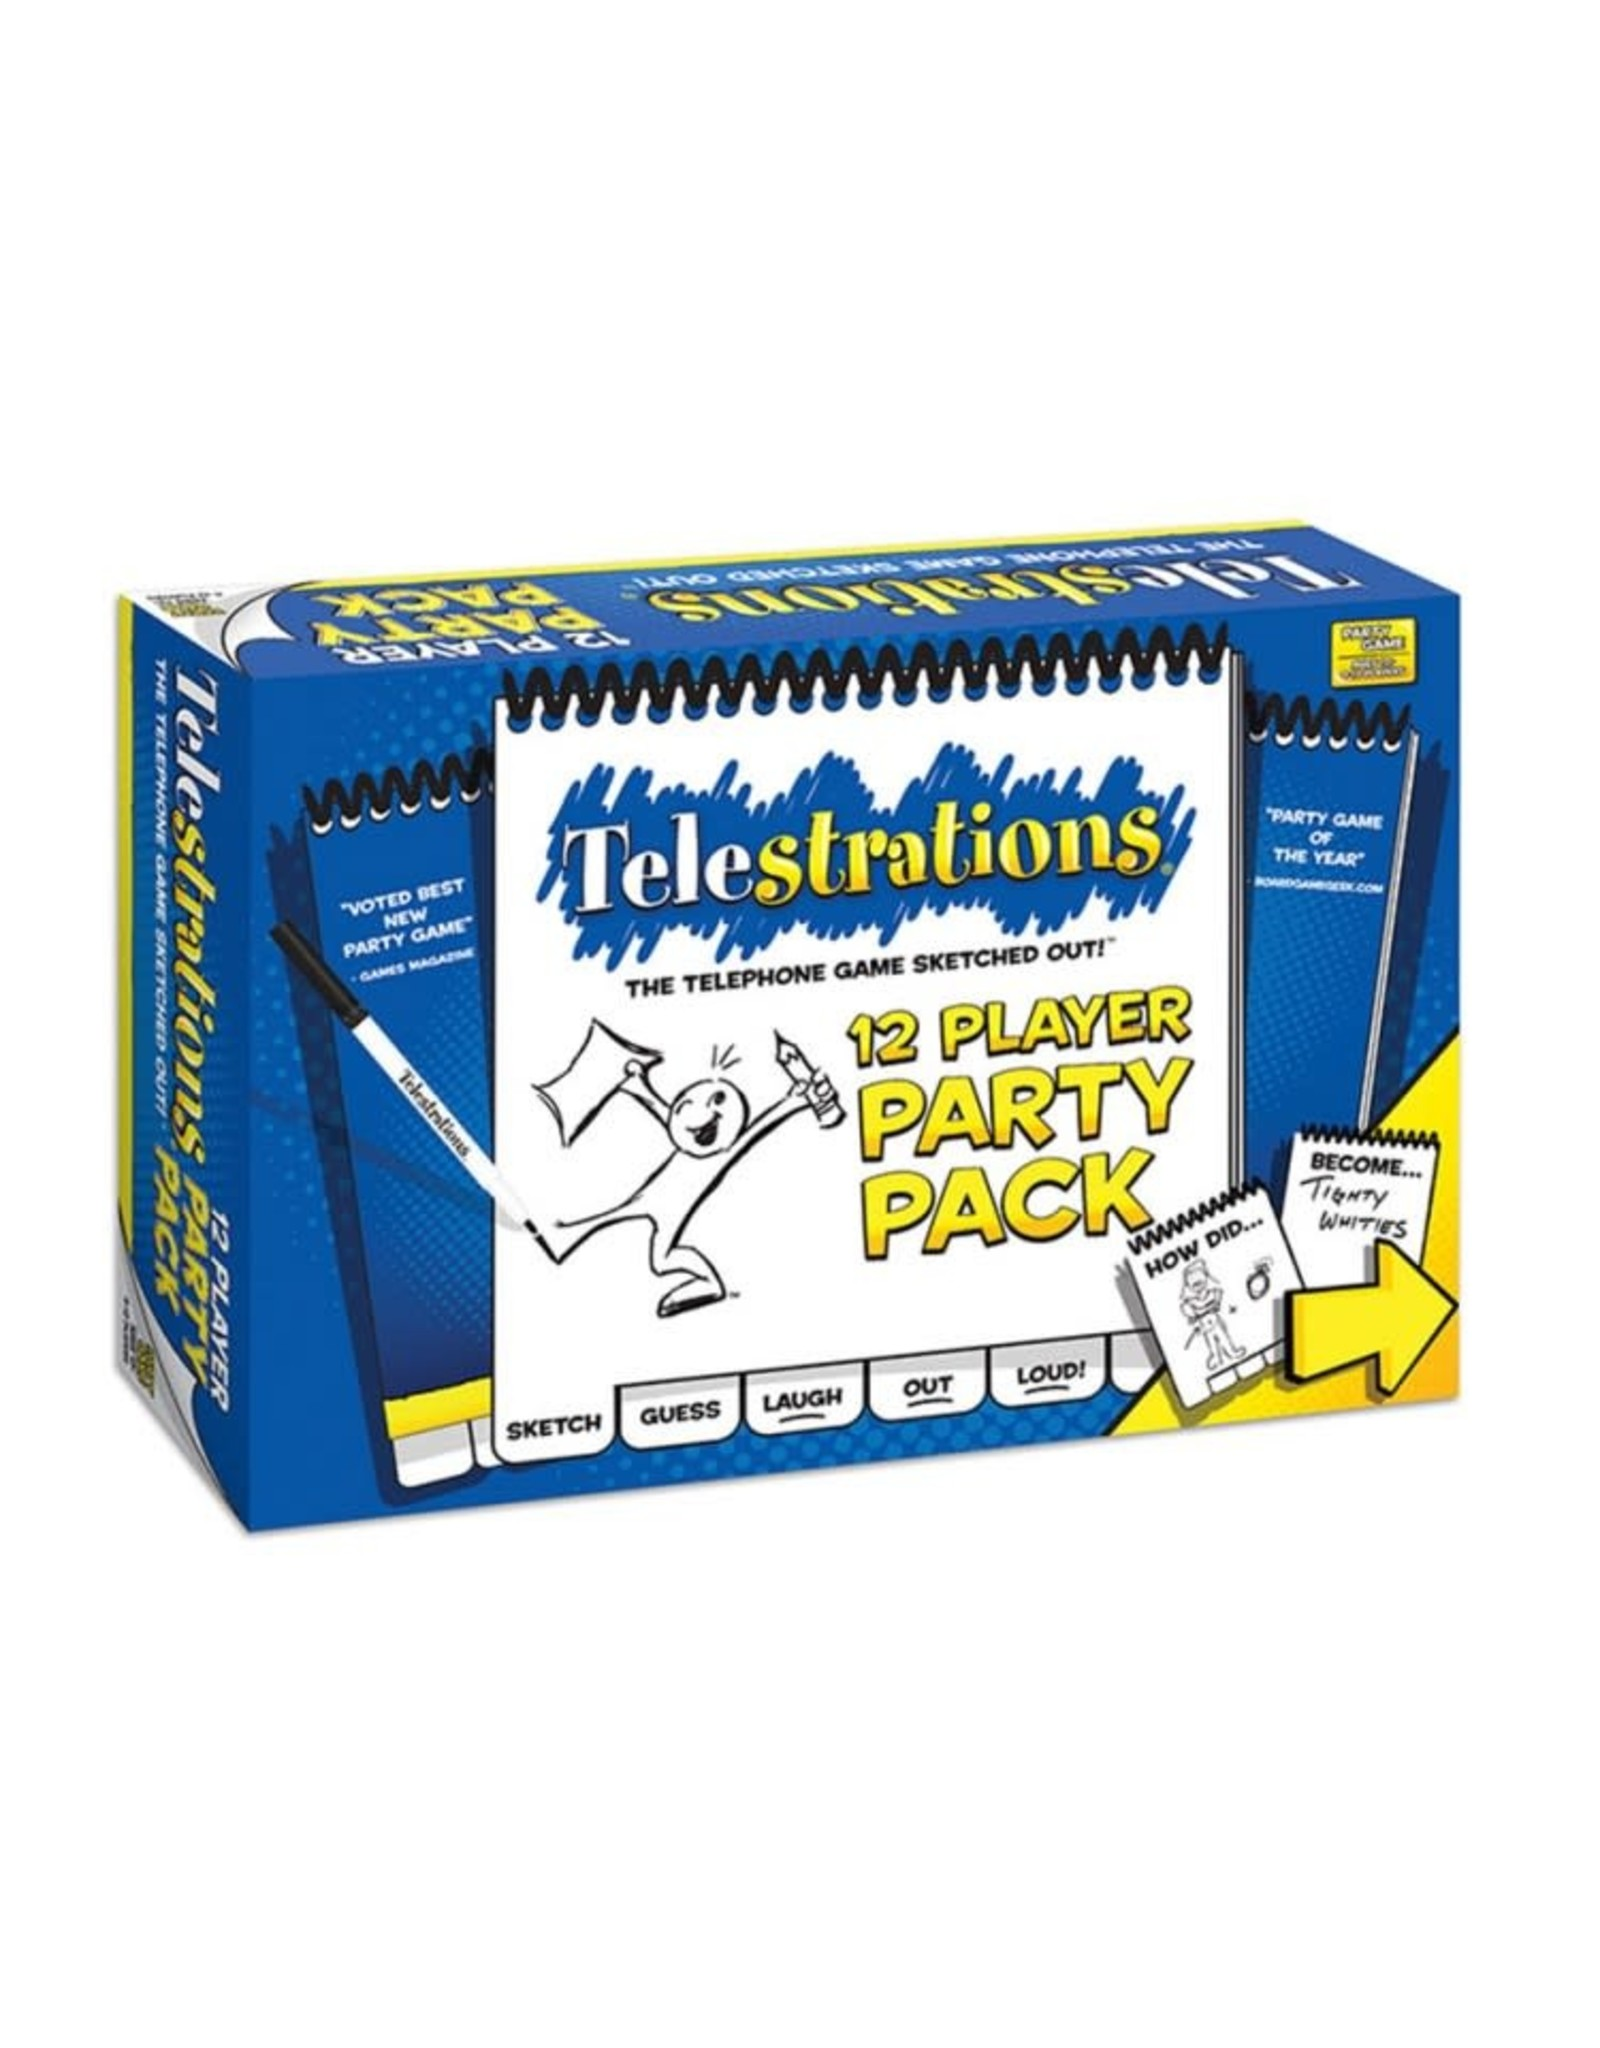 Usaopoly Telestrations Party Pack (12 Players)